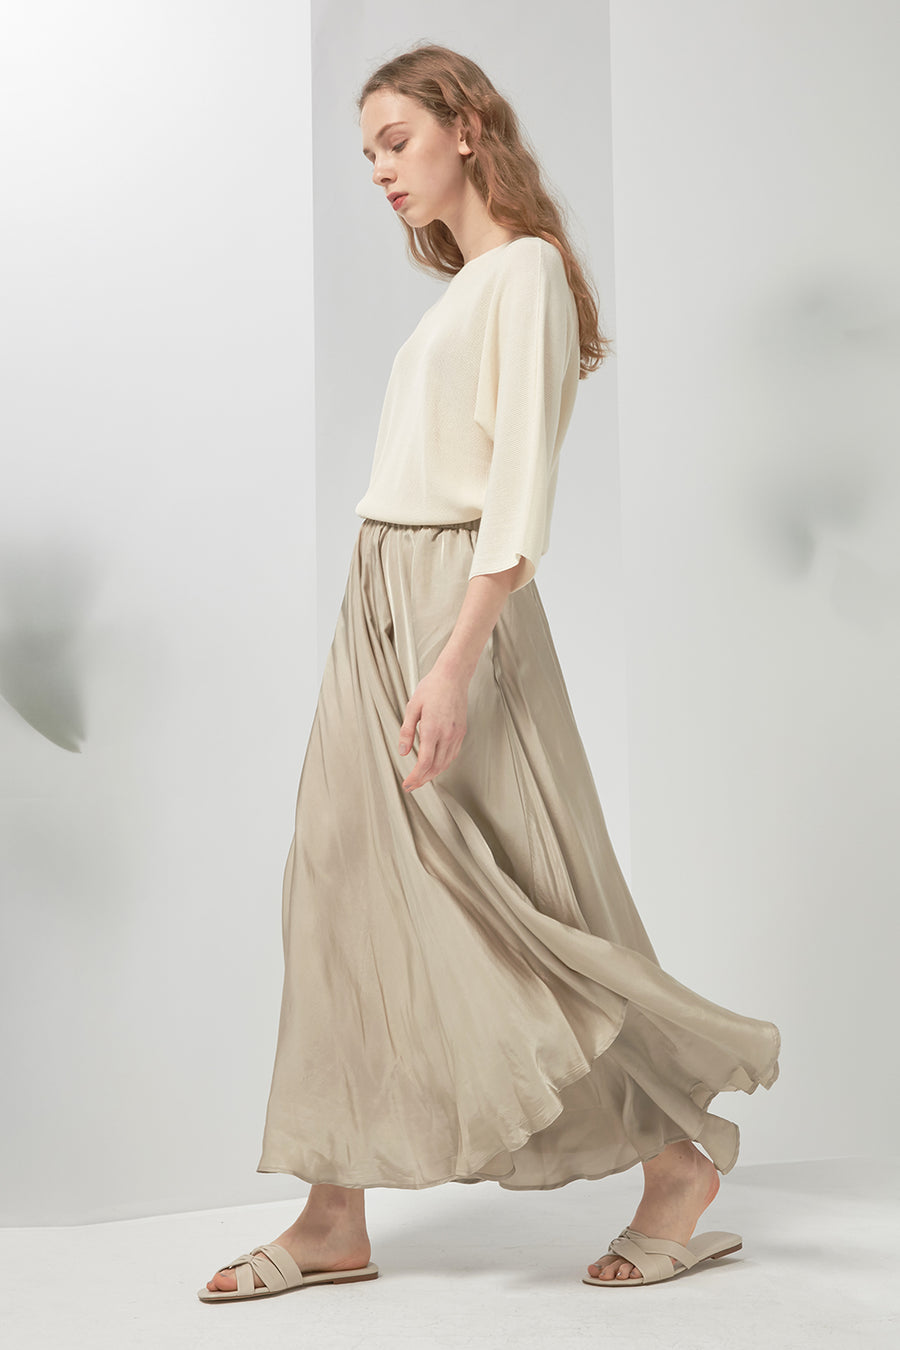 Long satin skirt - Zelle Studio